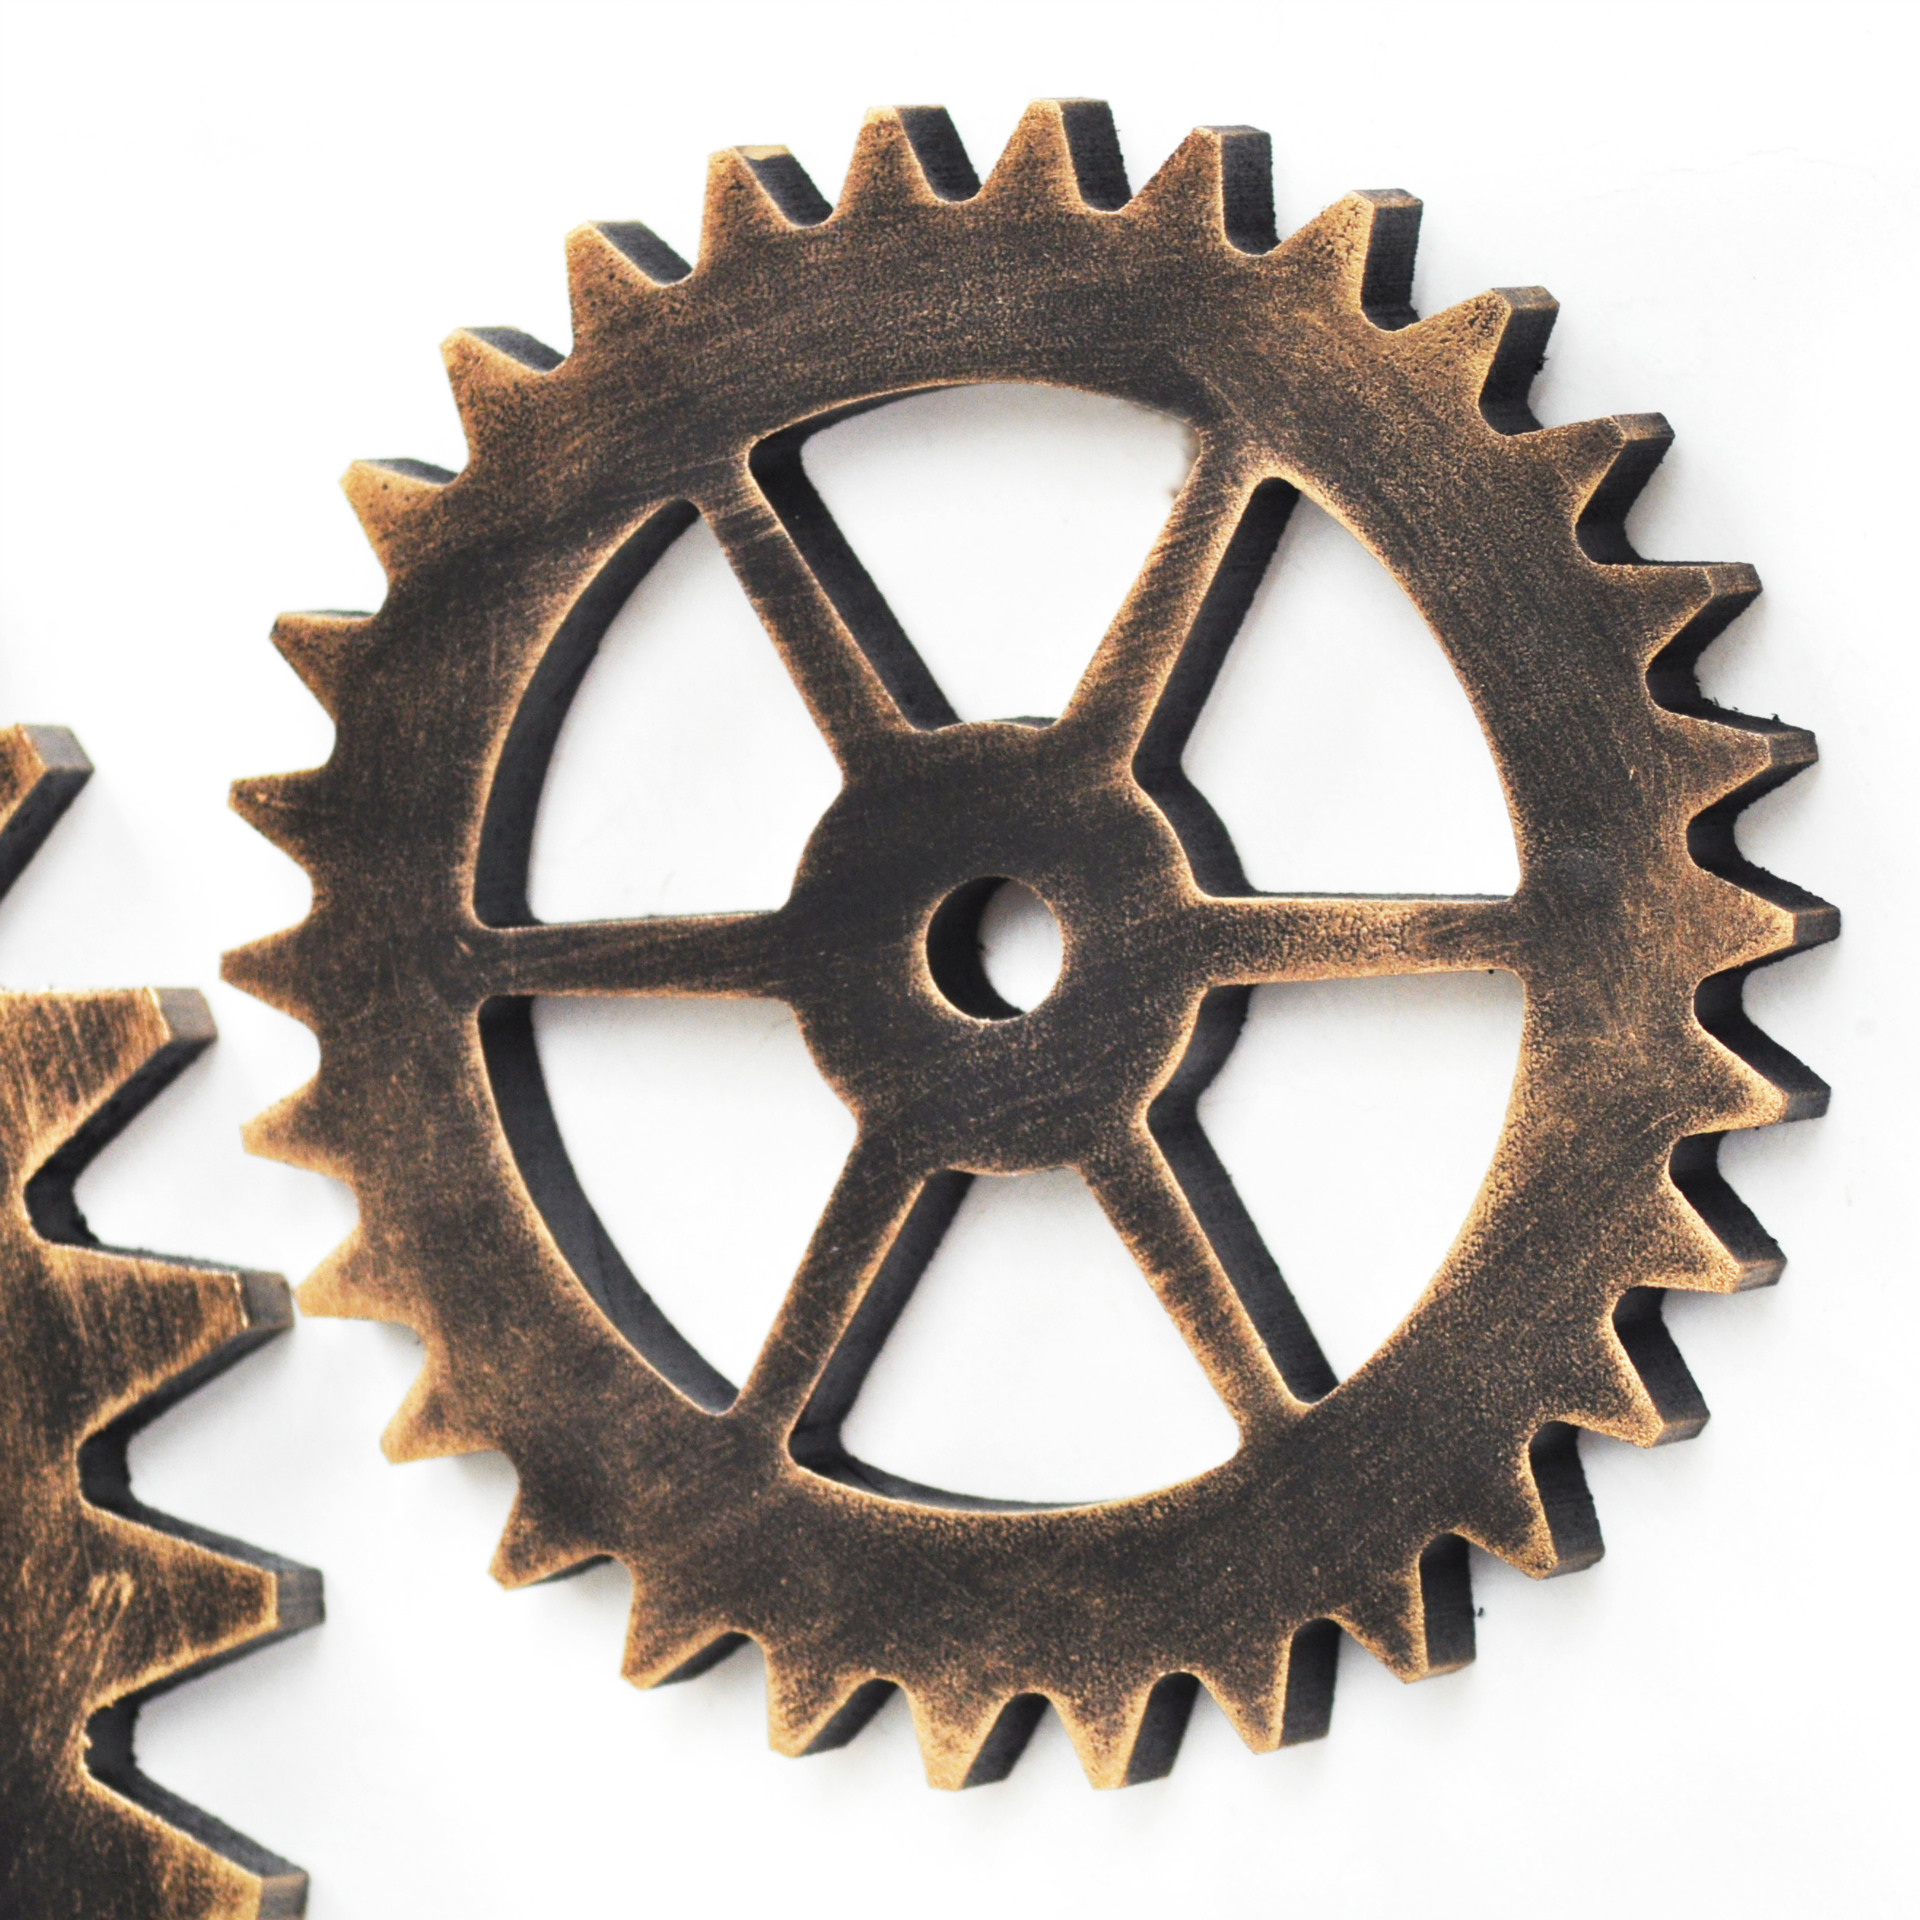 2pcslot 14cm mini retro industrial style wheel shaped wooden crafts shabby chic vintage bar